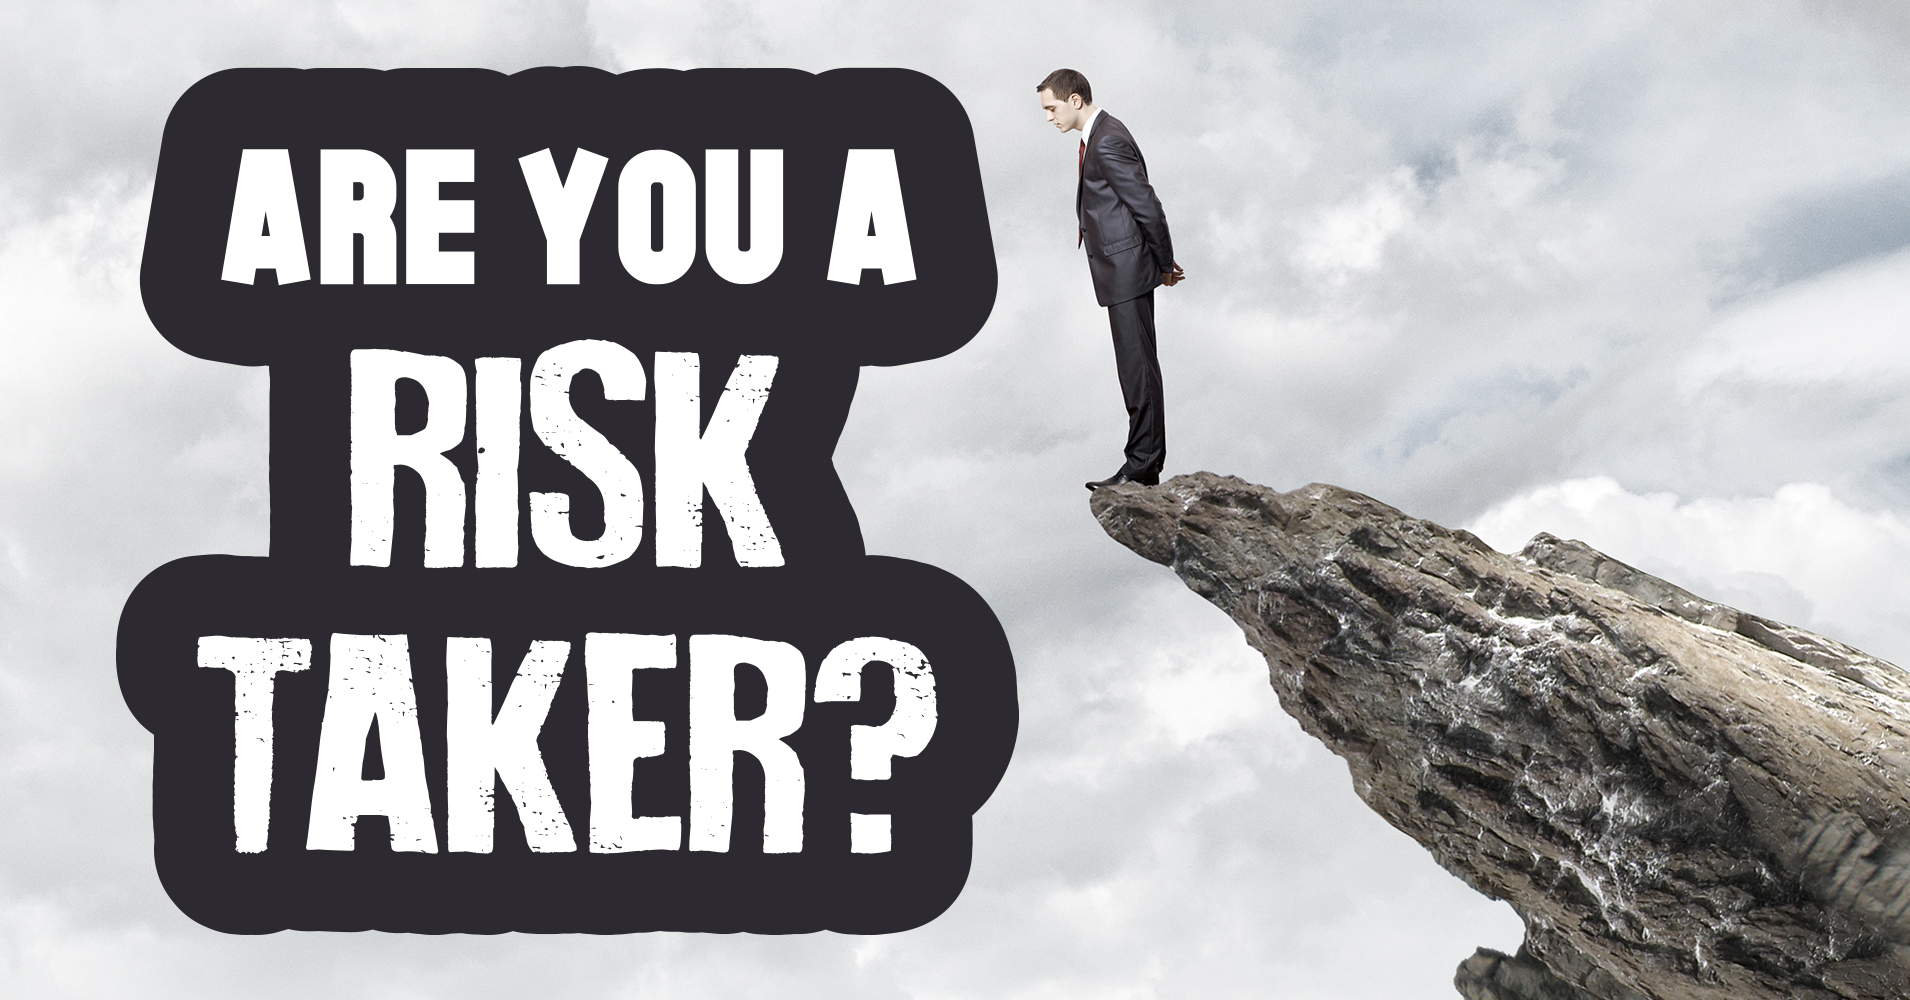 an analysis of the characterization of a risk tasker